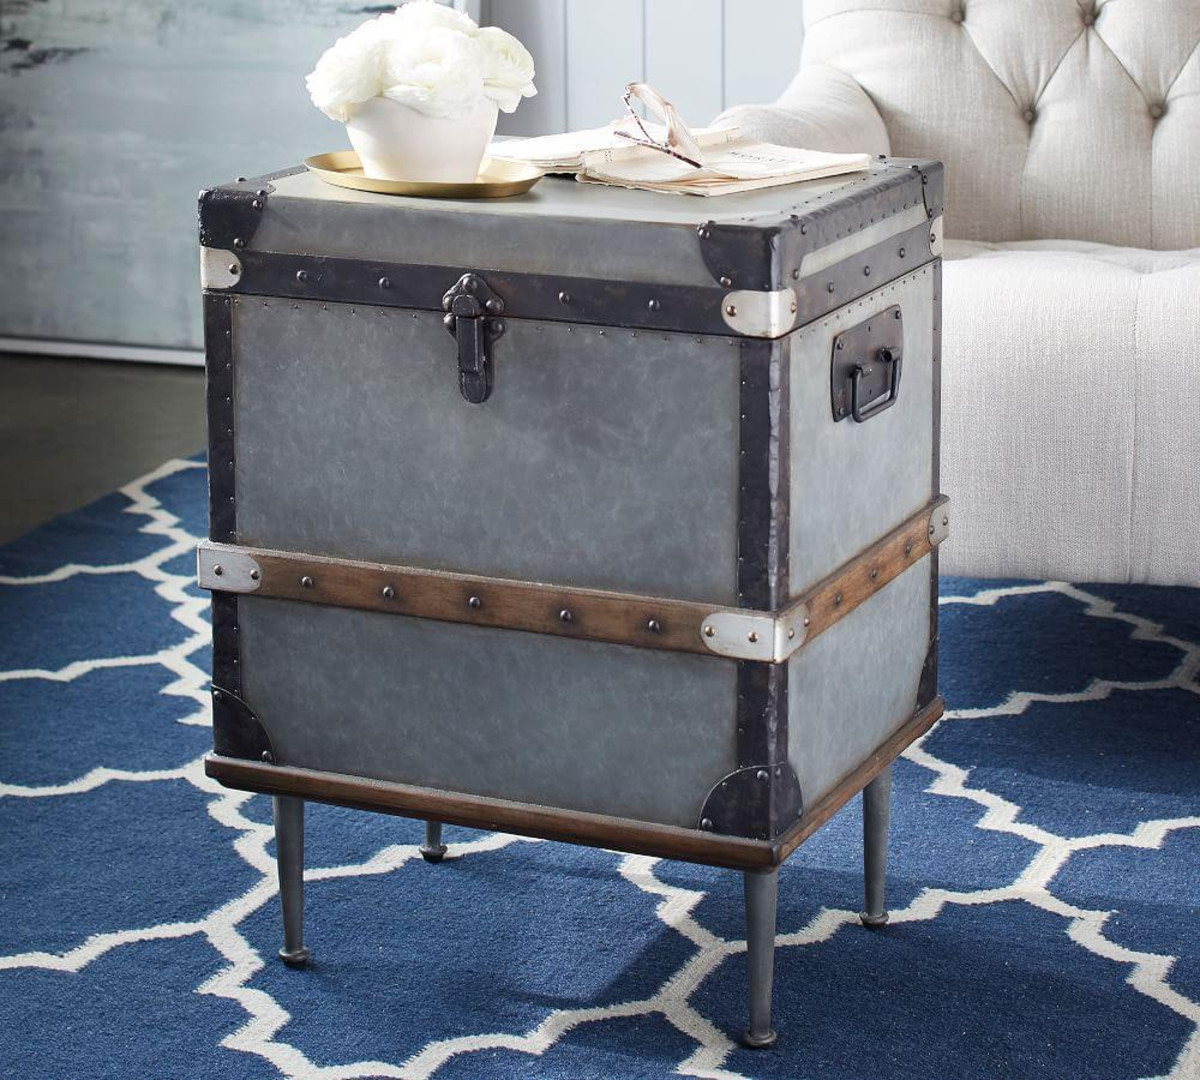 kirkwood trunk side table pottery barn media timor wood accent tall white bookcase outdoor umbrella stand weights ikea bedroom storage ideas inch console glass lamp shades for